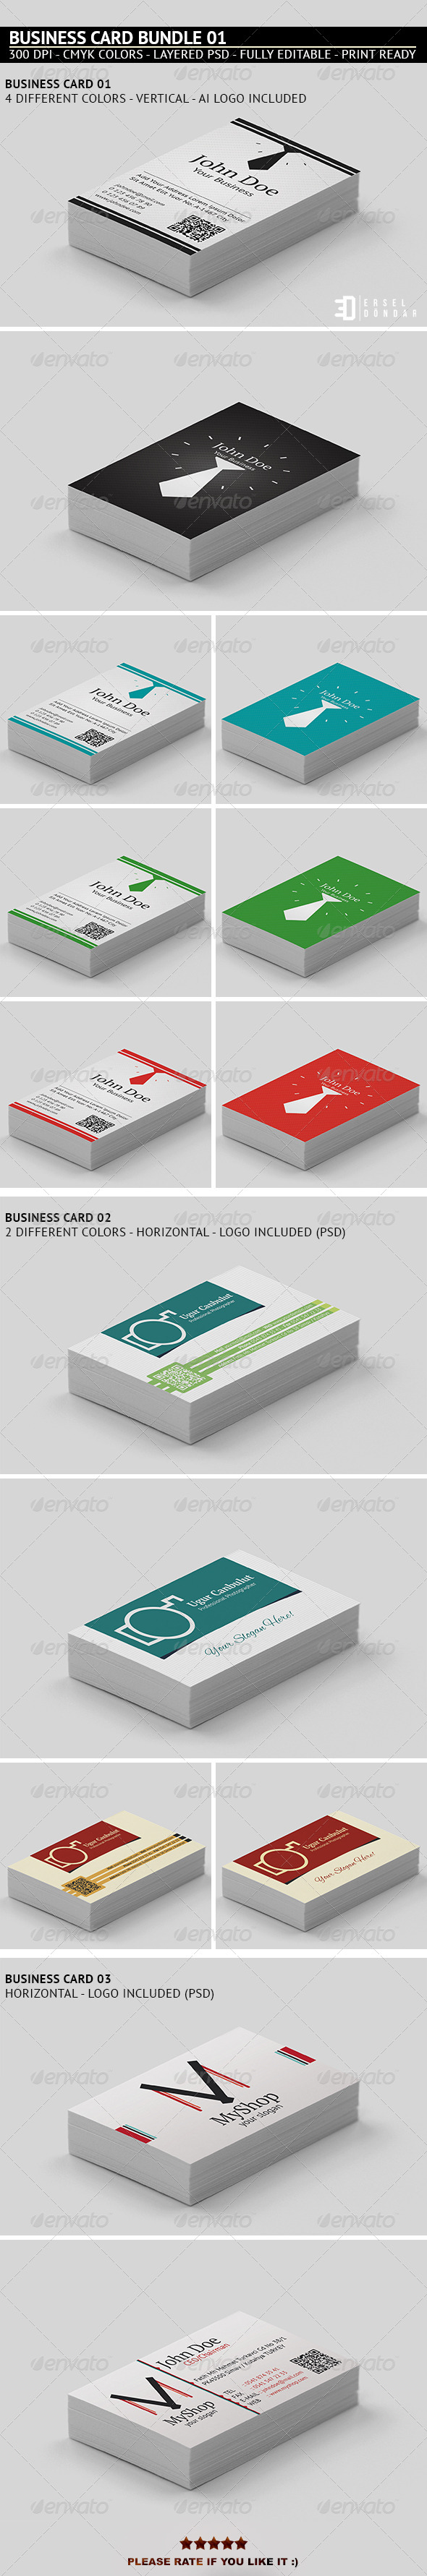 GraphicRiver Business Card Bundle 1 5409708